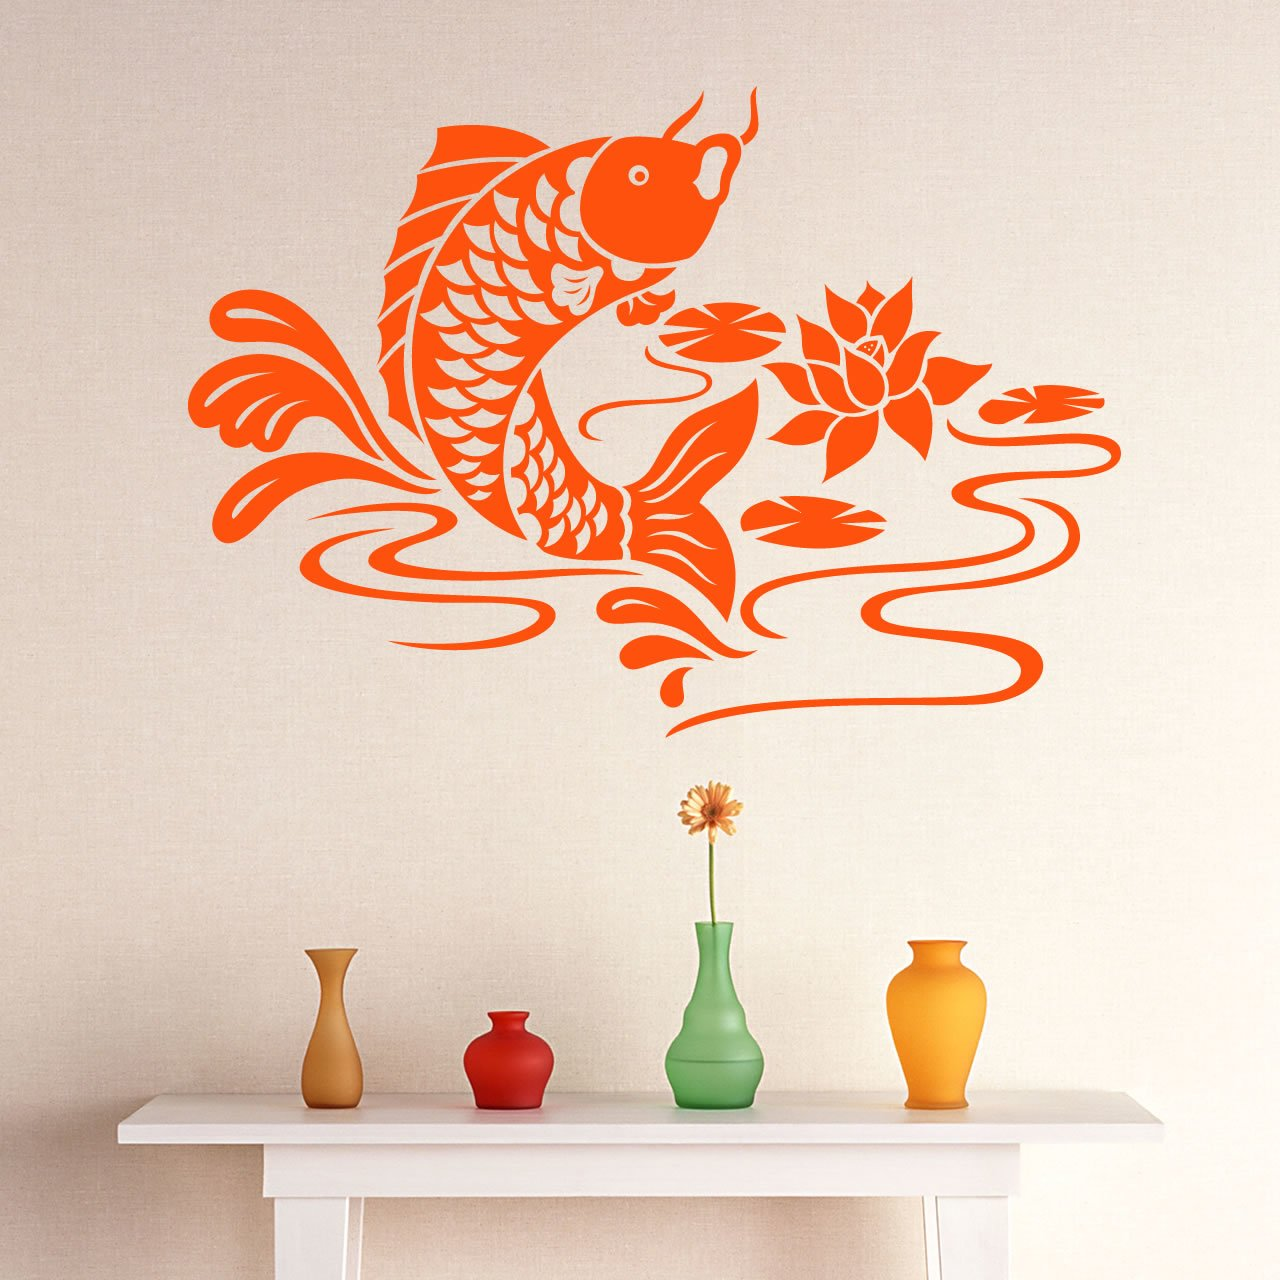 Koi carp fish animal wall sticker world of wall stickers amipublicfo Images